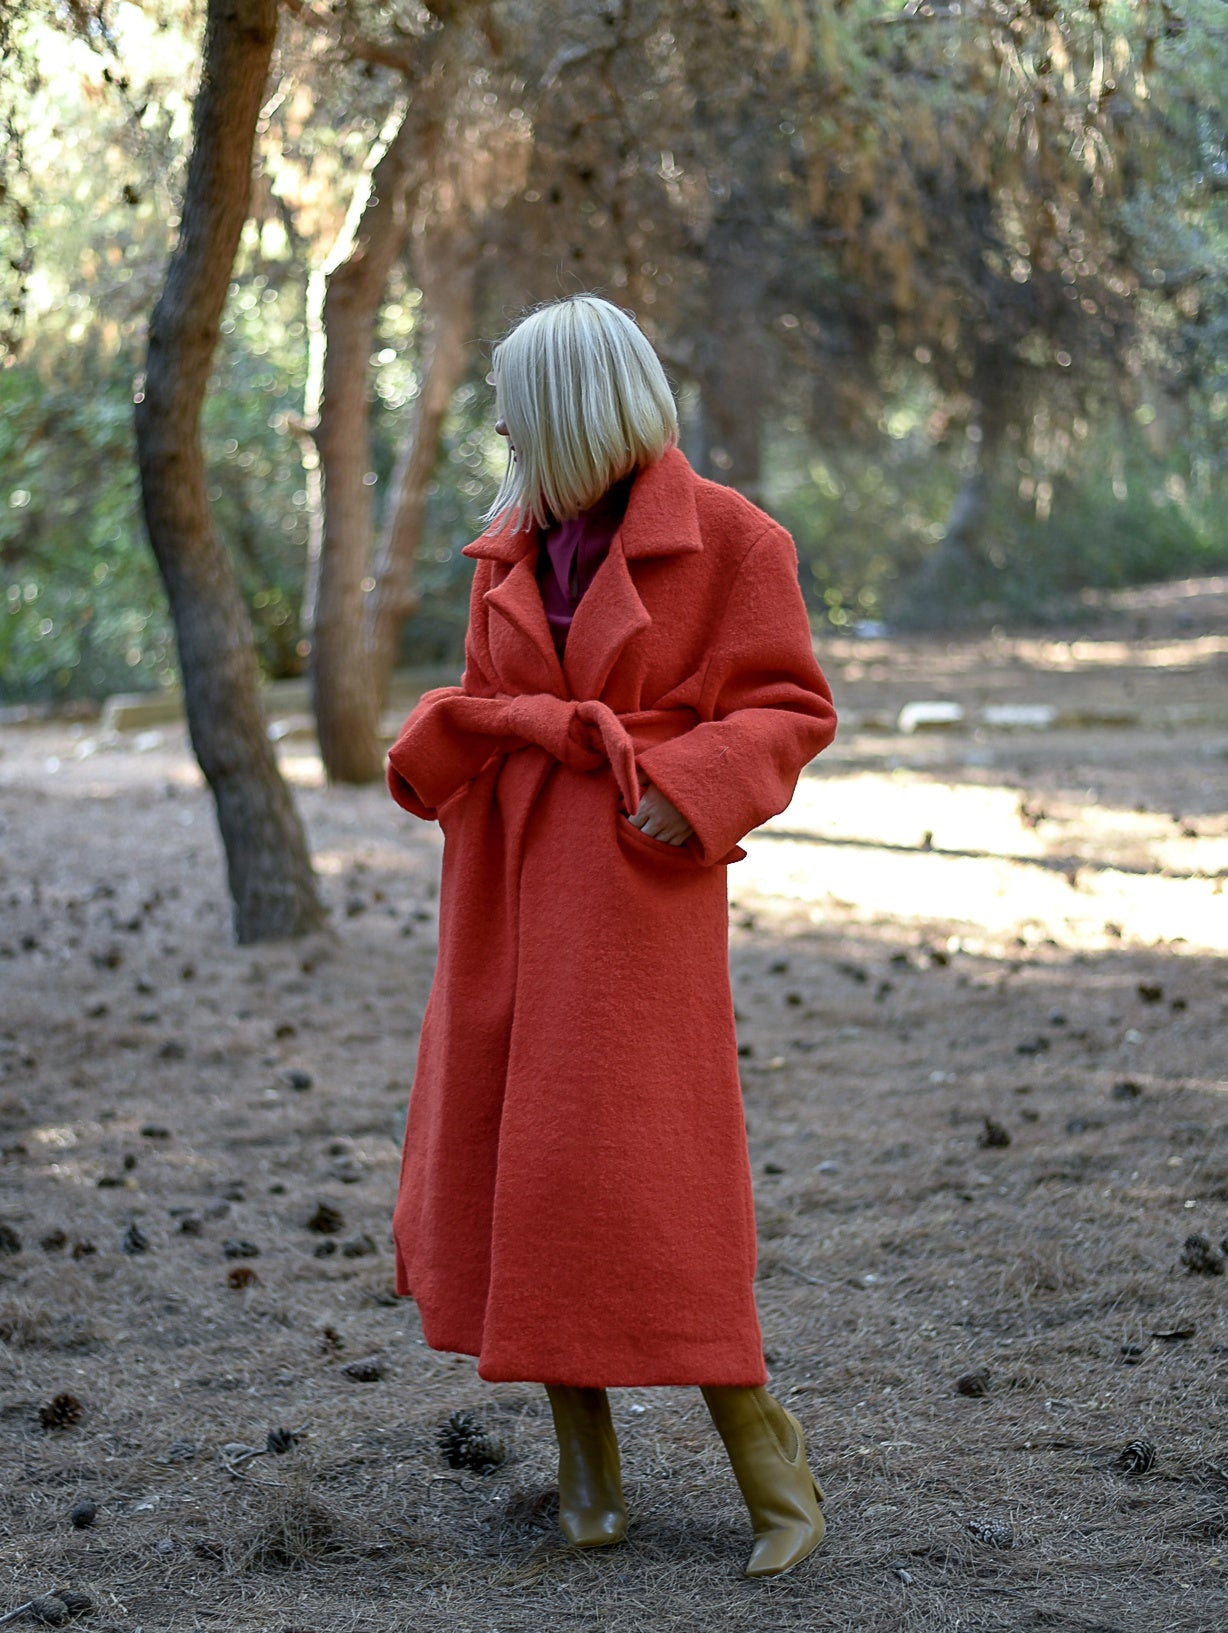 Asper Red Coat Damodastories Collection